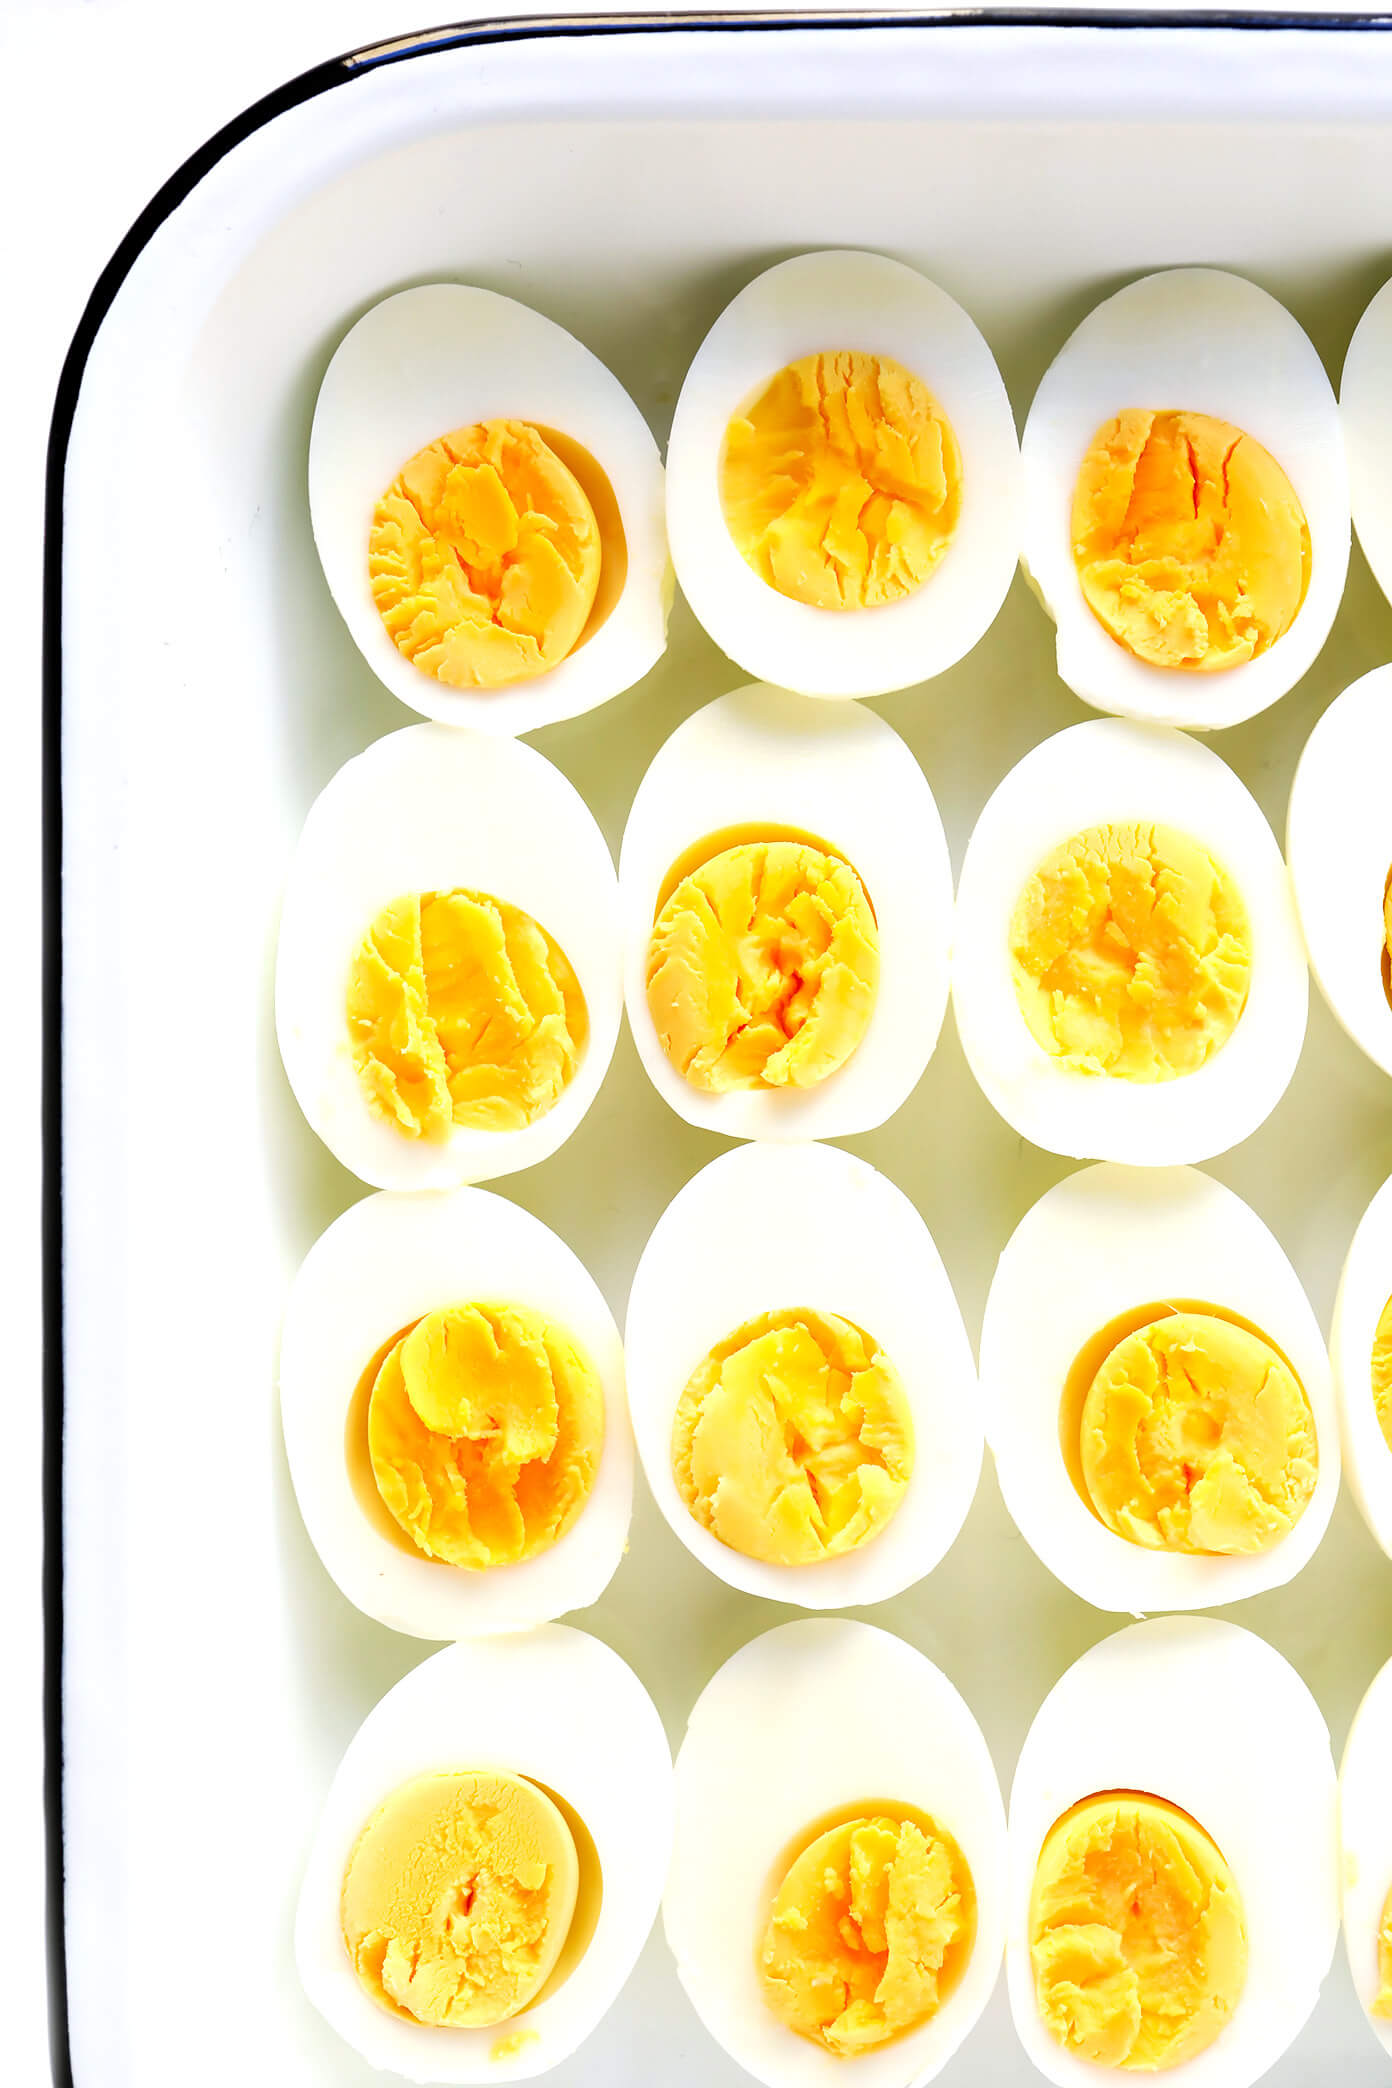 Instant Pot Hard Boiled Eggs Recipe